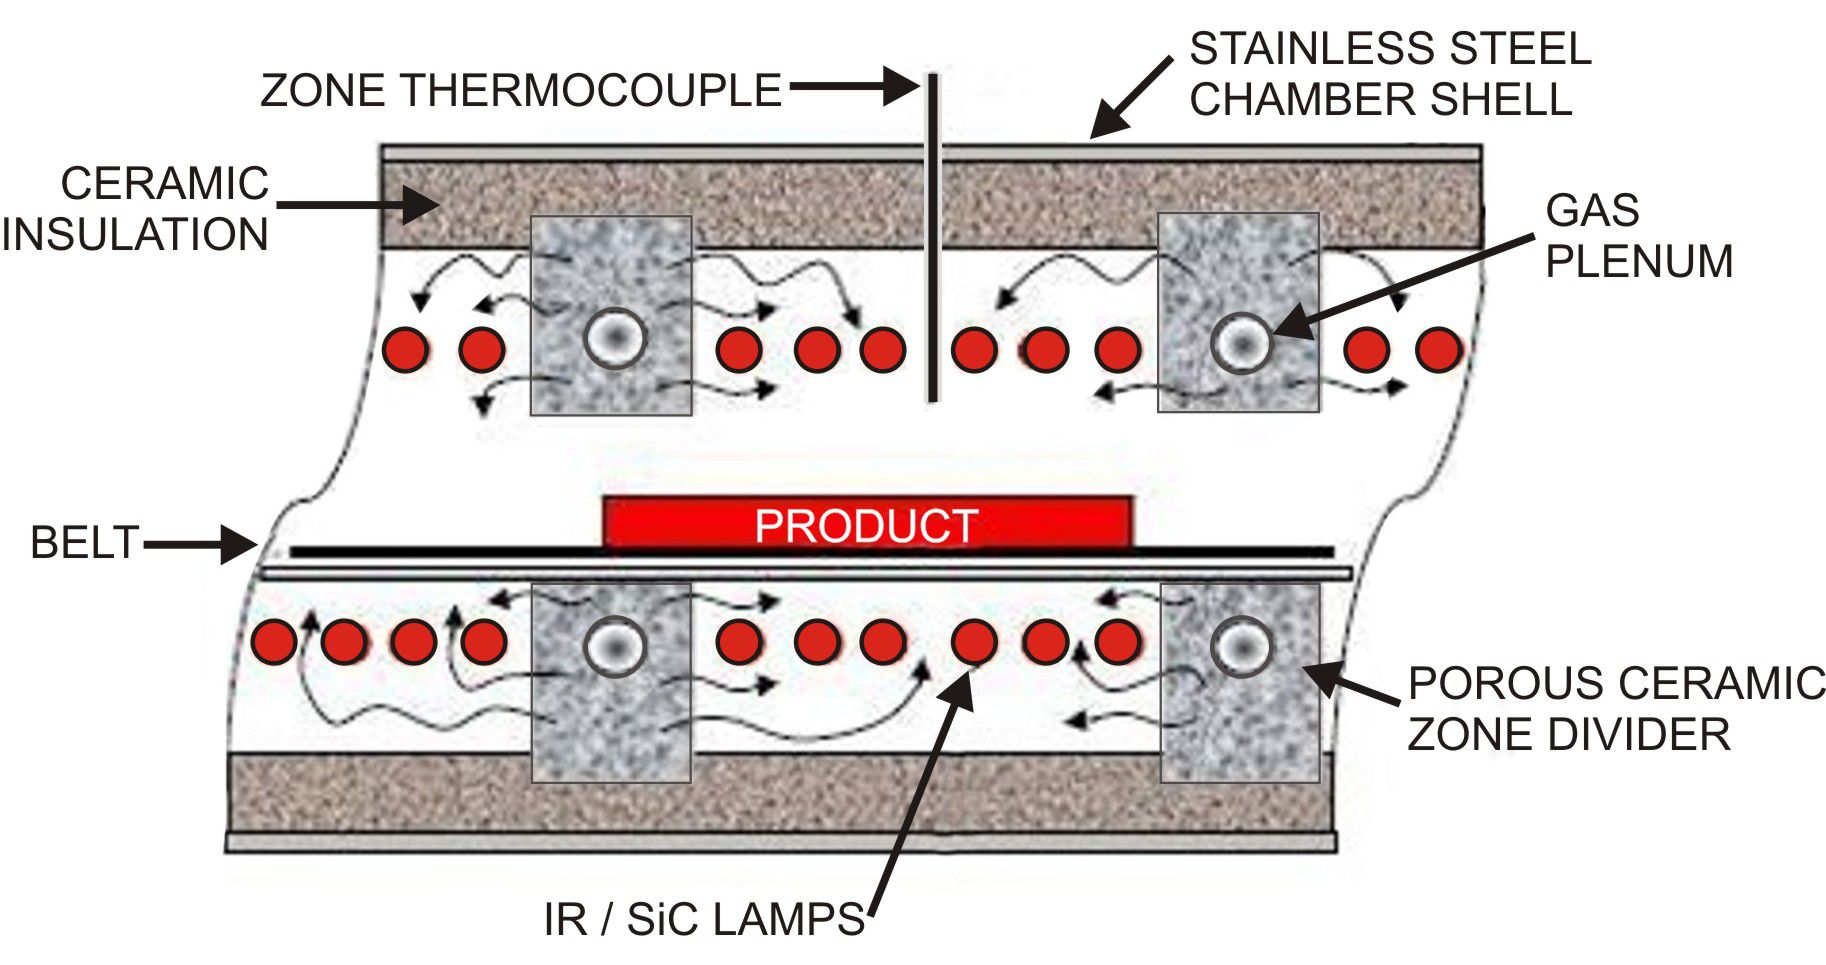 Process Gas introduced into IR infrared furnace chamber